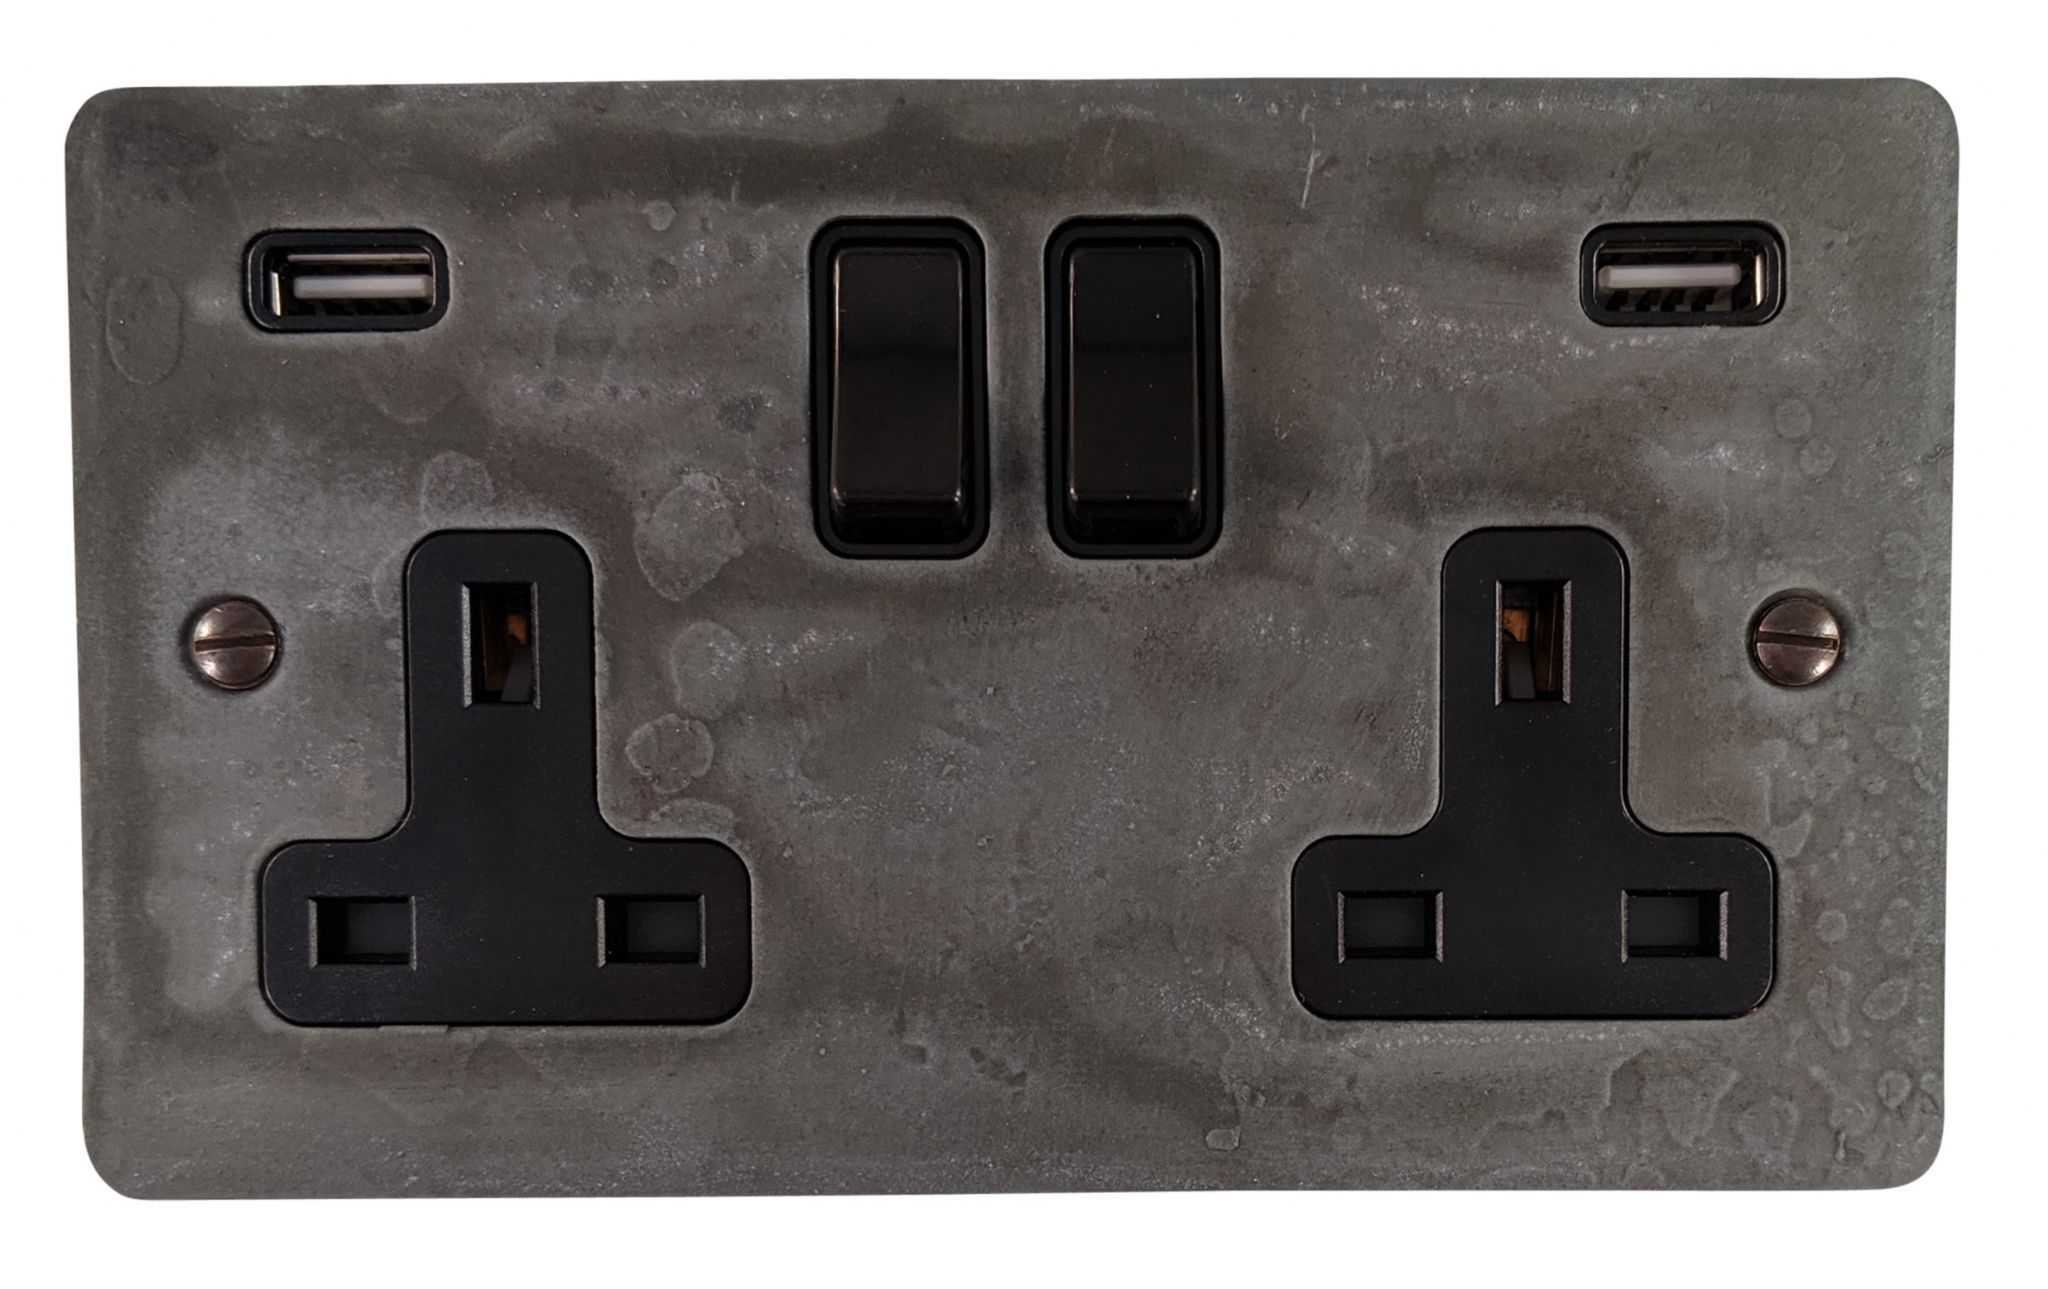 G&H FRP910B Flat Plate Rustic Pewter 2 Gang Double 13A Switched Plug Socket 2.1A USB